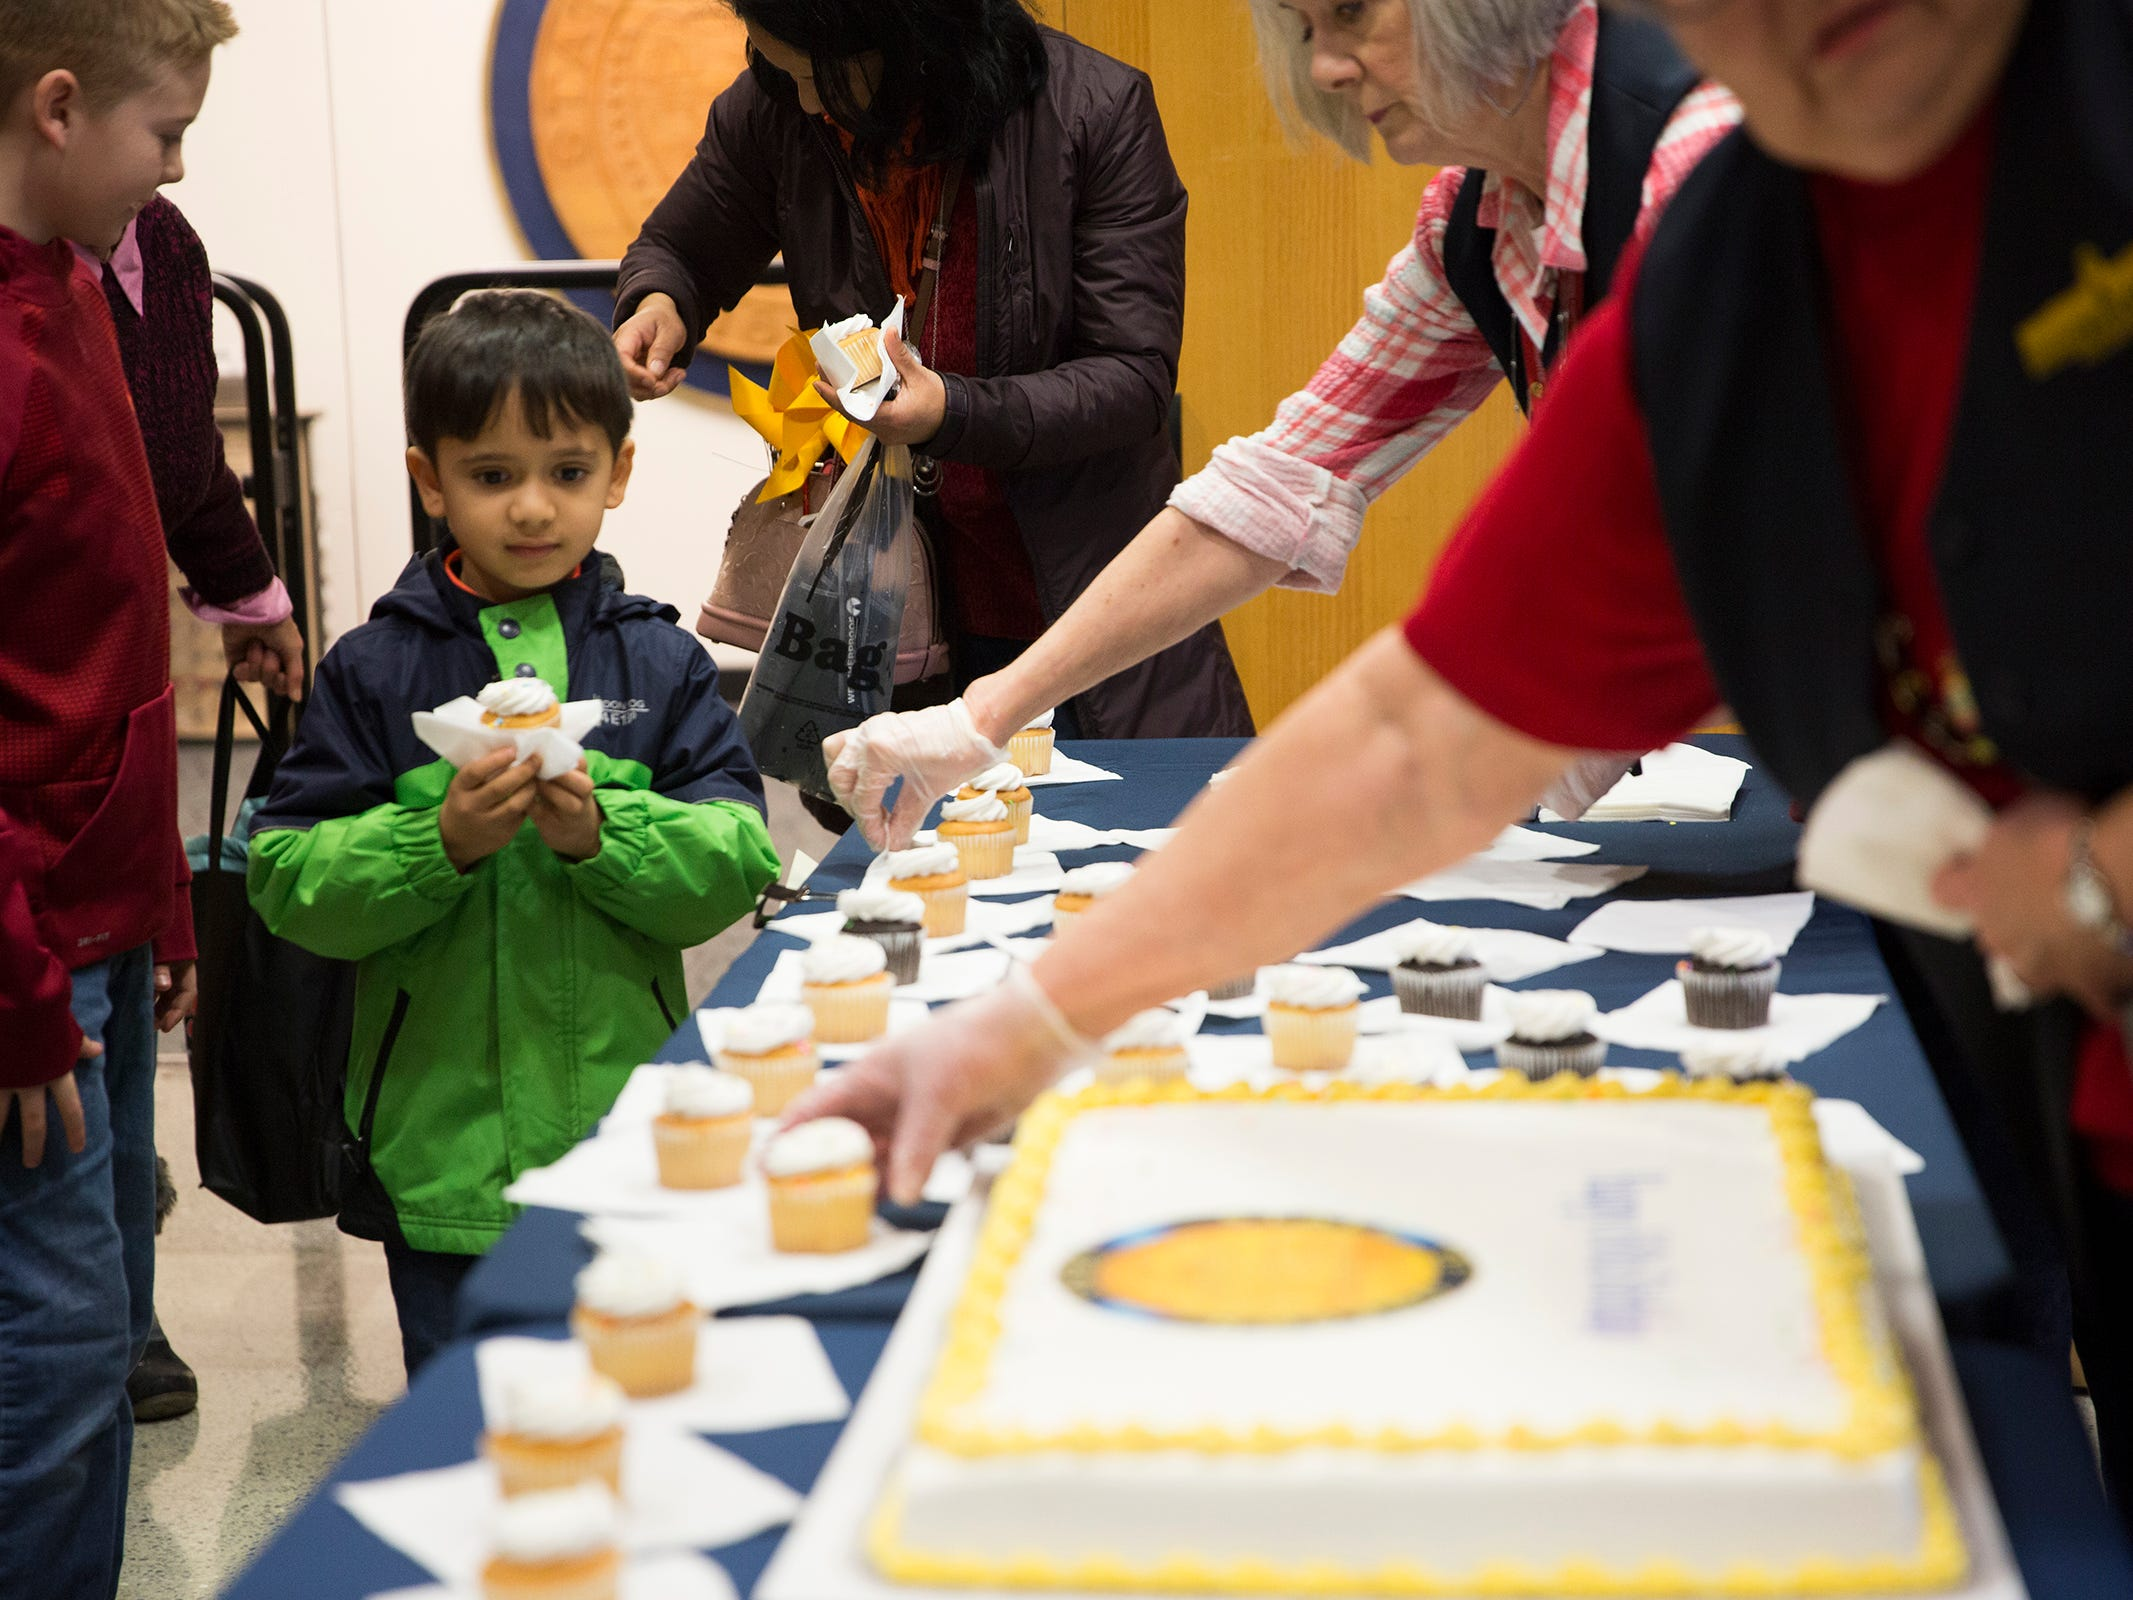 Rohan Pathak, 5, picks out a cupcake during Oregon's 160th Birthday Celebration at the Oregon State Capitol in Salem on Saturday, Feb. 16, 2019.